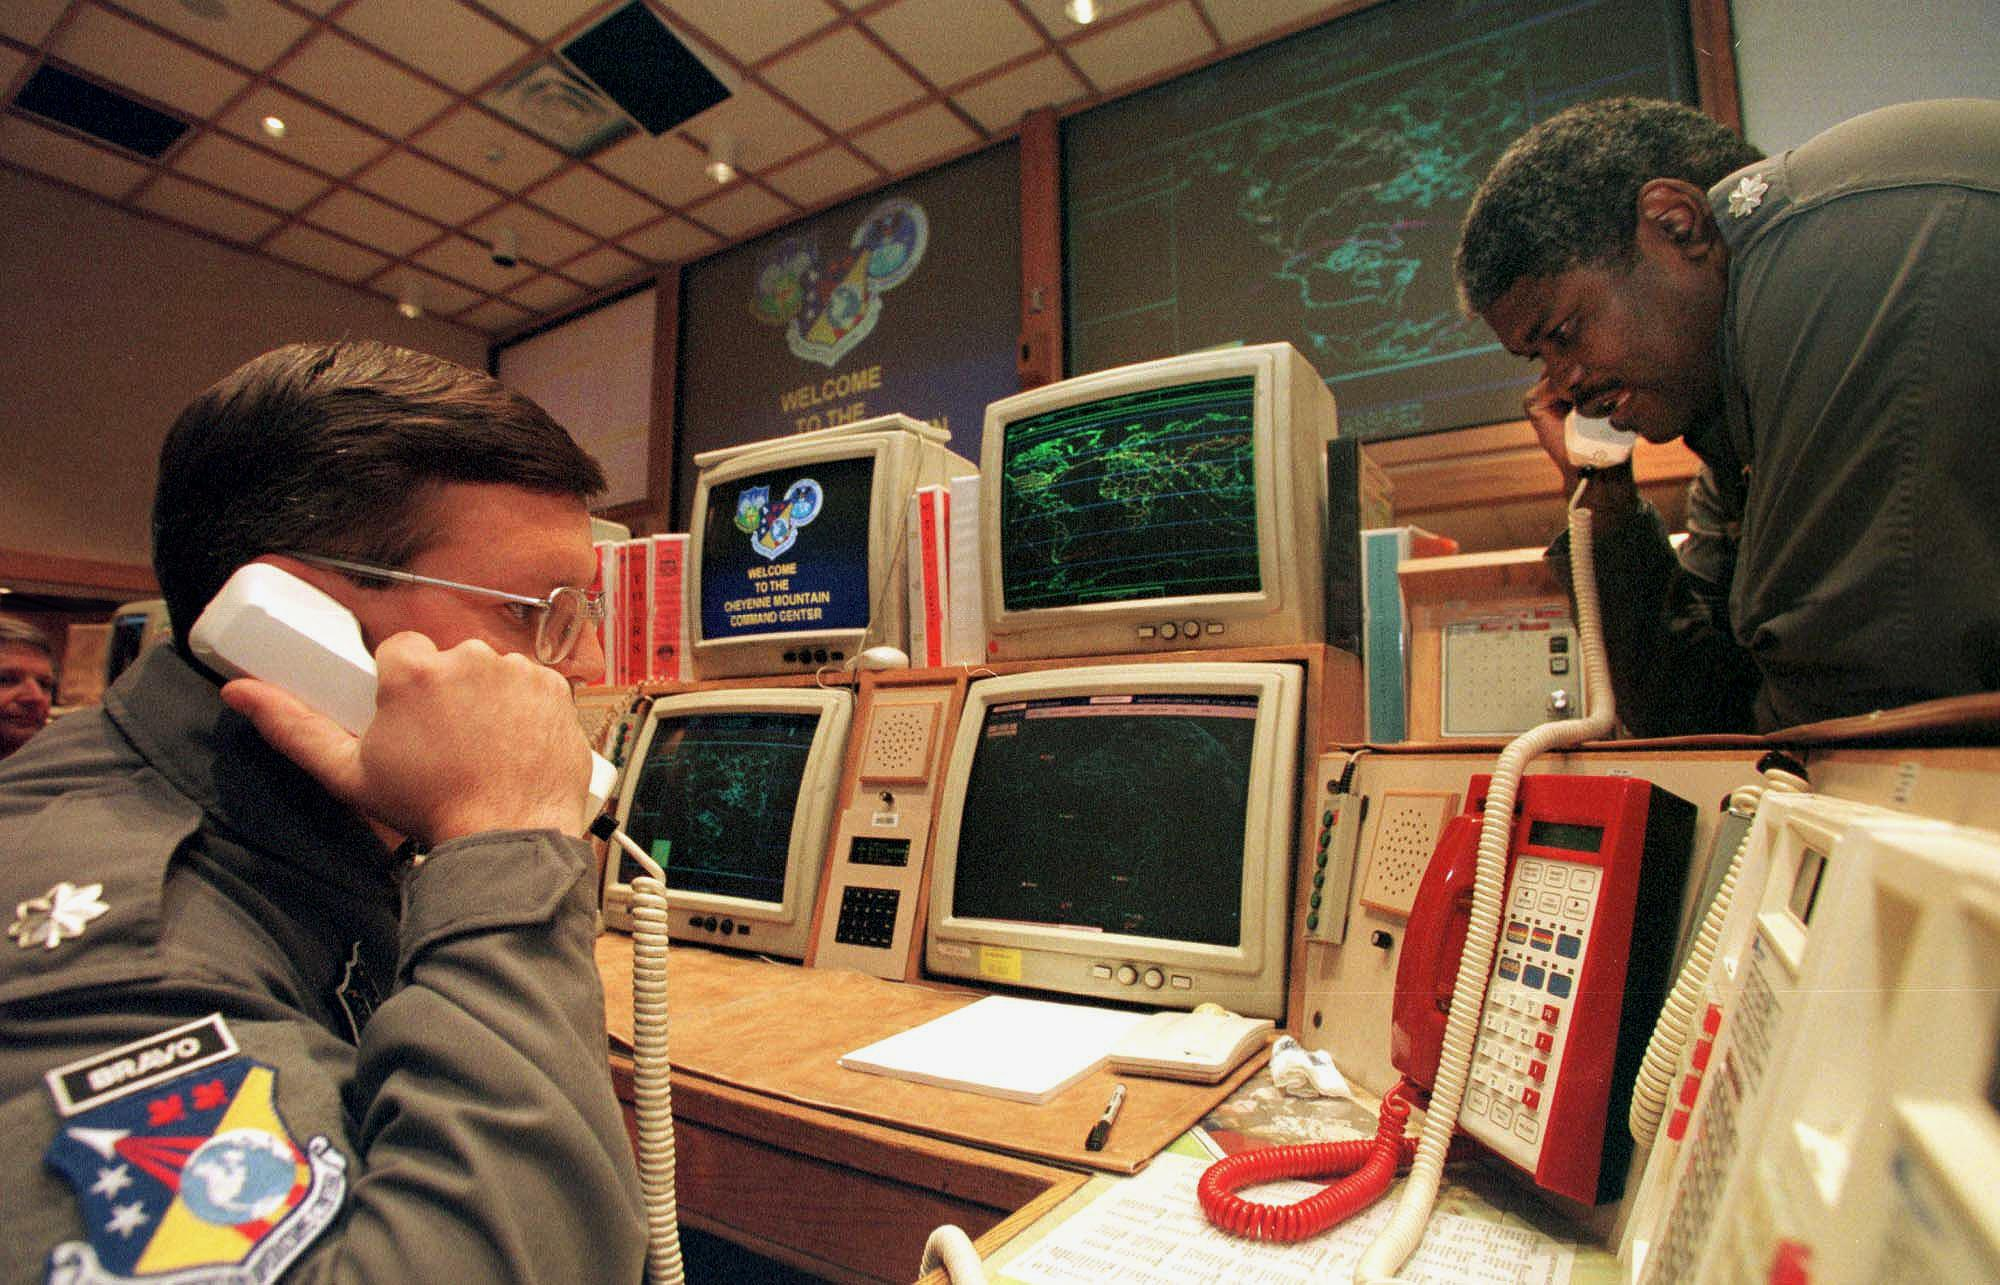 Missile Commanders Lt. (L) and Lt. Col. Ken Reed confirm a launch warning over the phone during a practice drill at the North America Aerospace Defense Command (NORAD) Cheyenne Mountain Complex in November 1999.  (credit: MARK LEFFINGWELL/AFP/Getty Images)